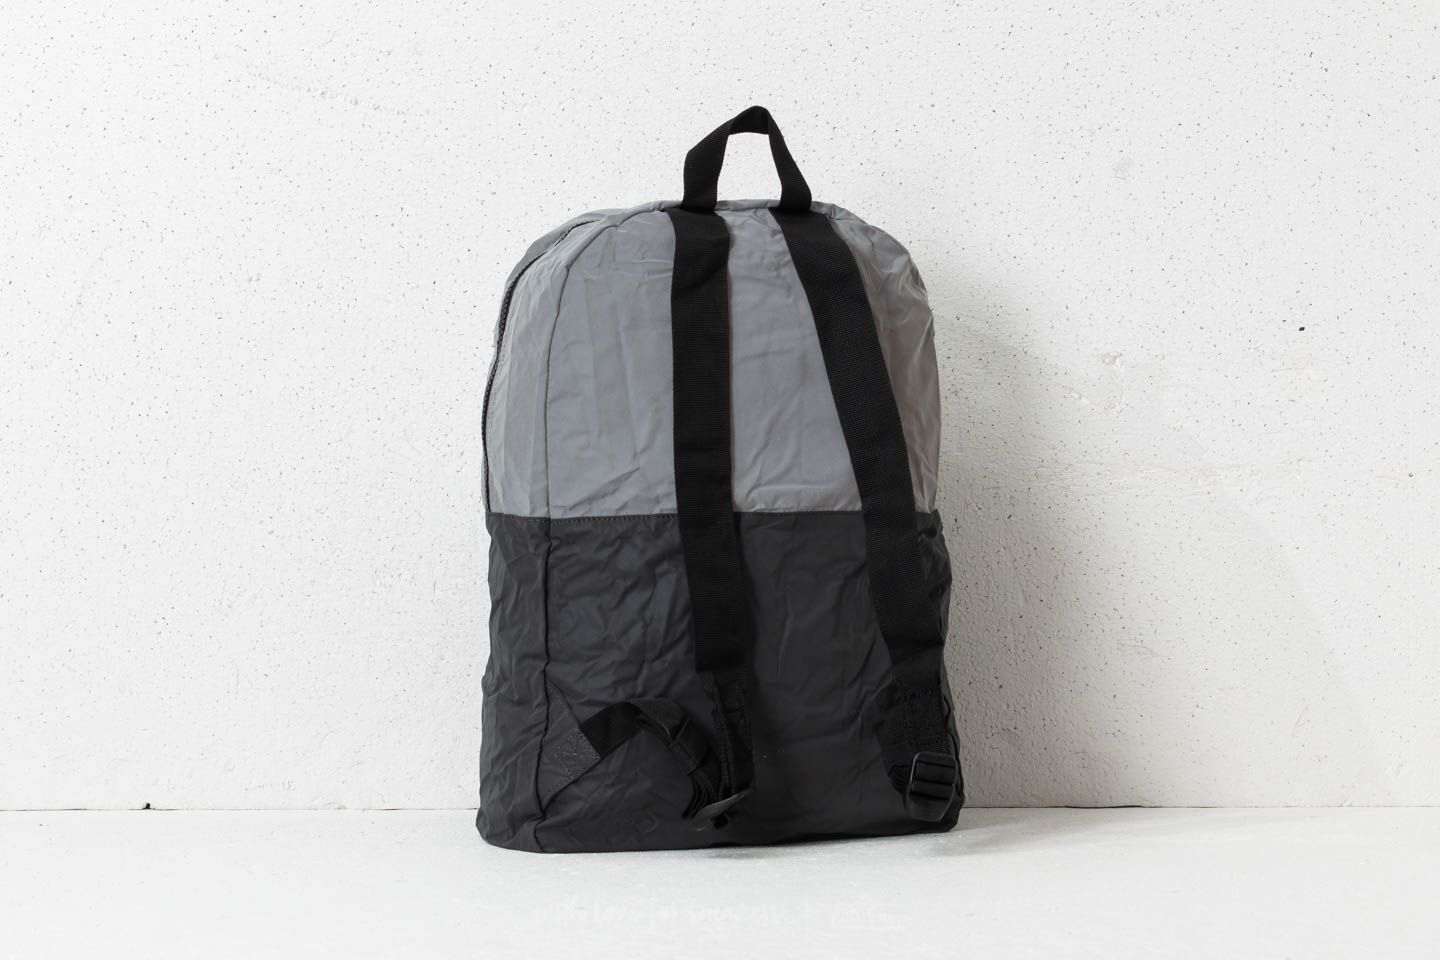 001ebe6b12b6 Herschel Supply Co. Packable Daypack Silver  Black Reflective at a great  price 25 €